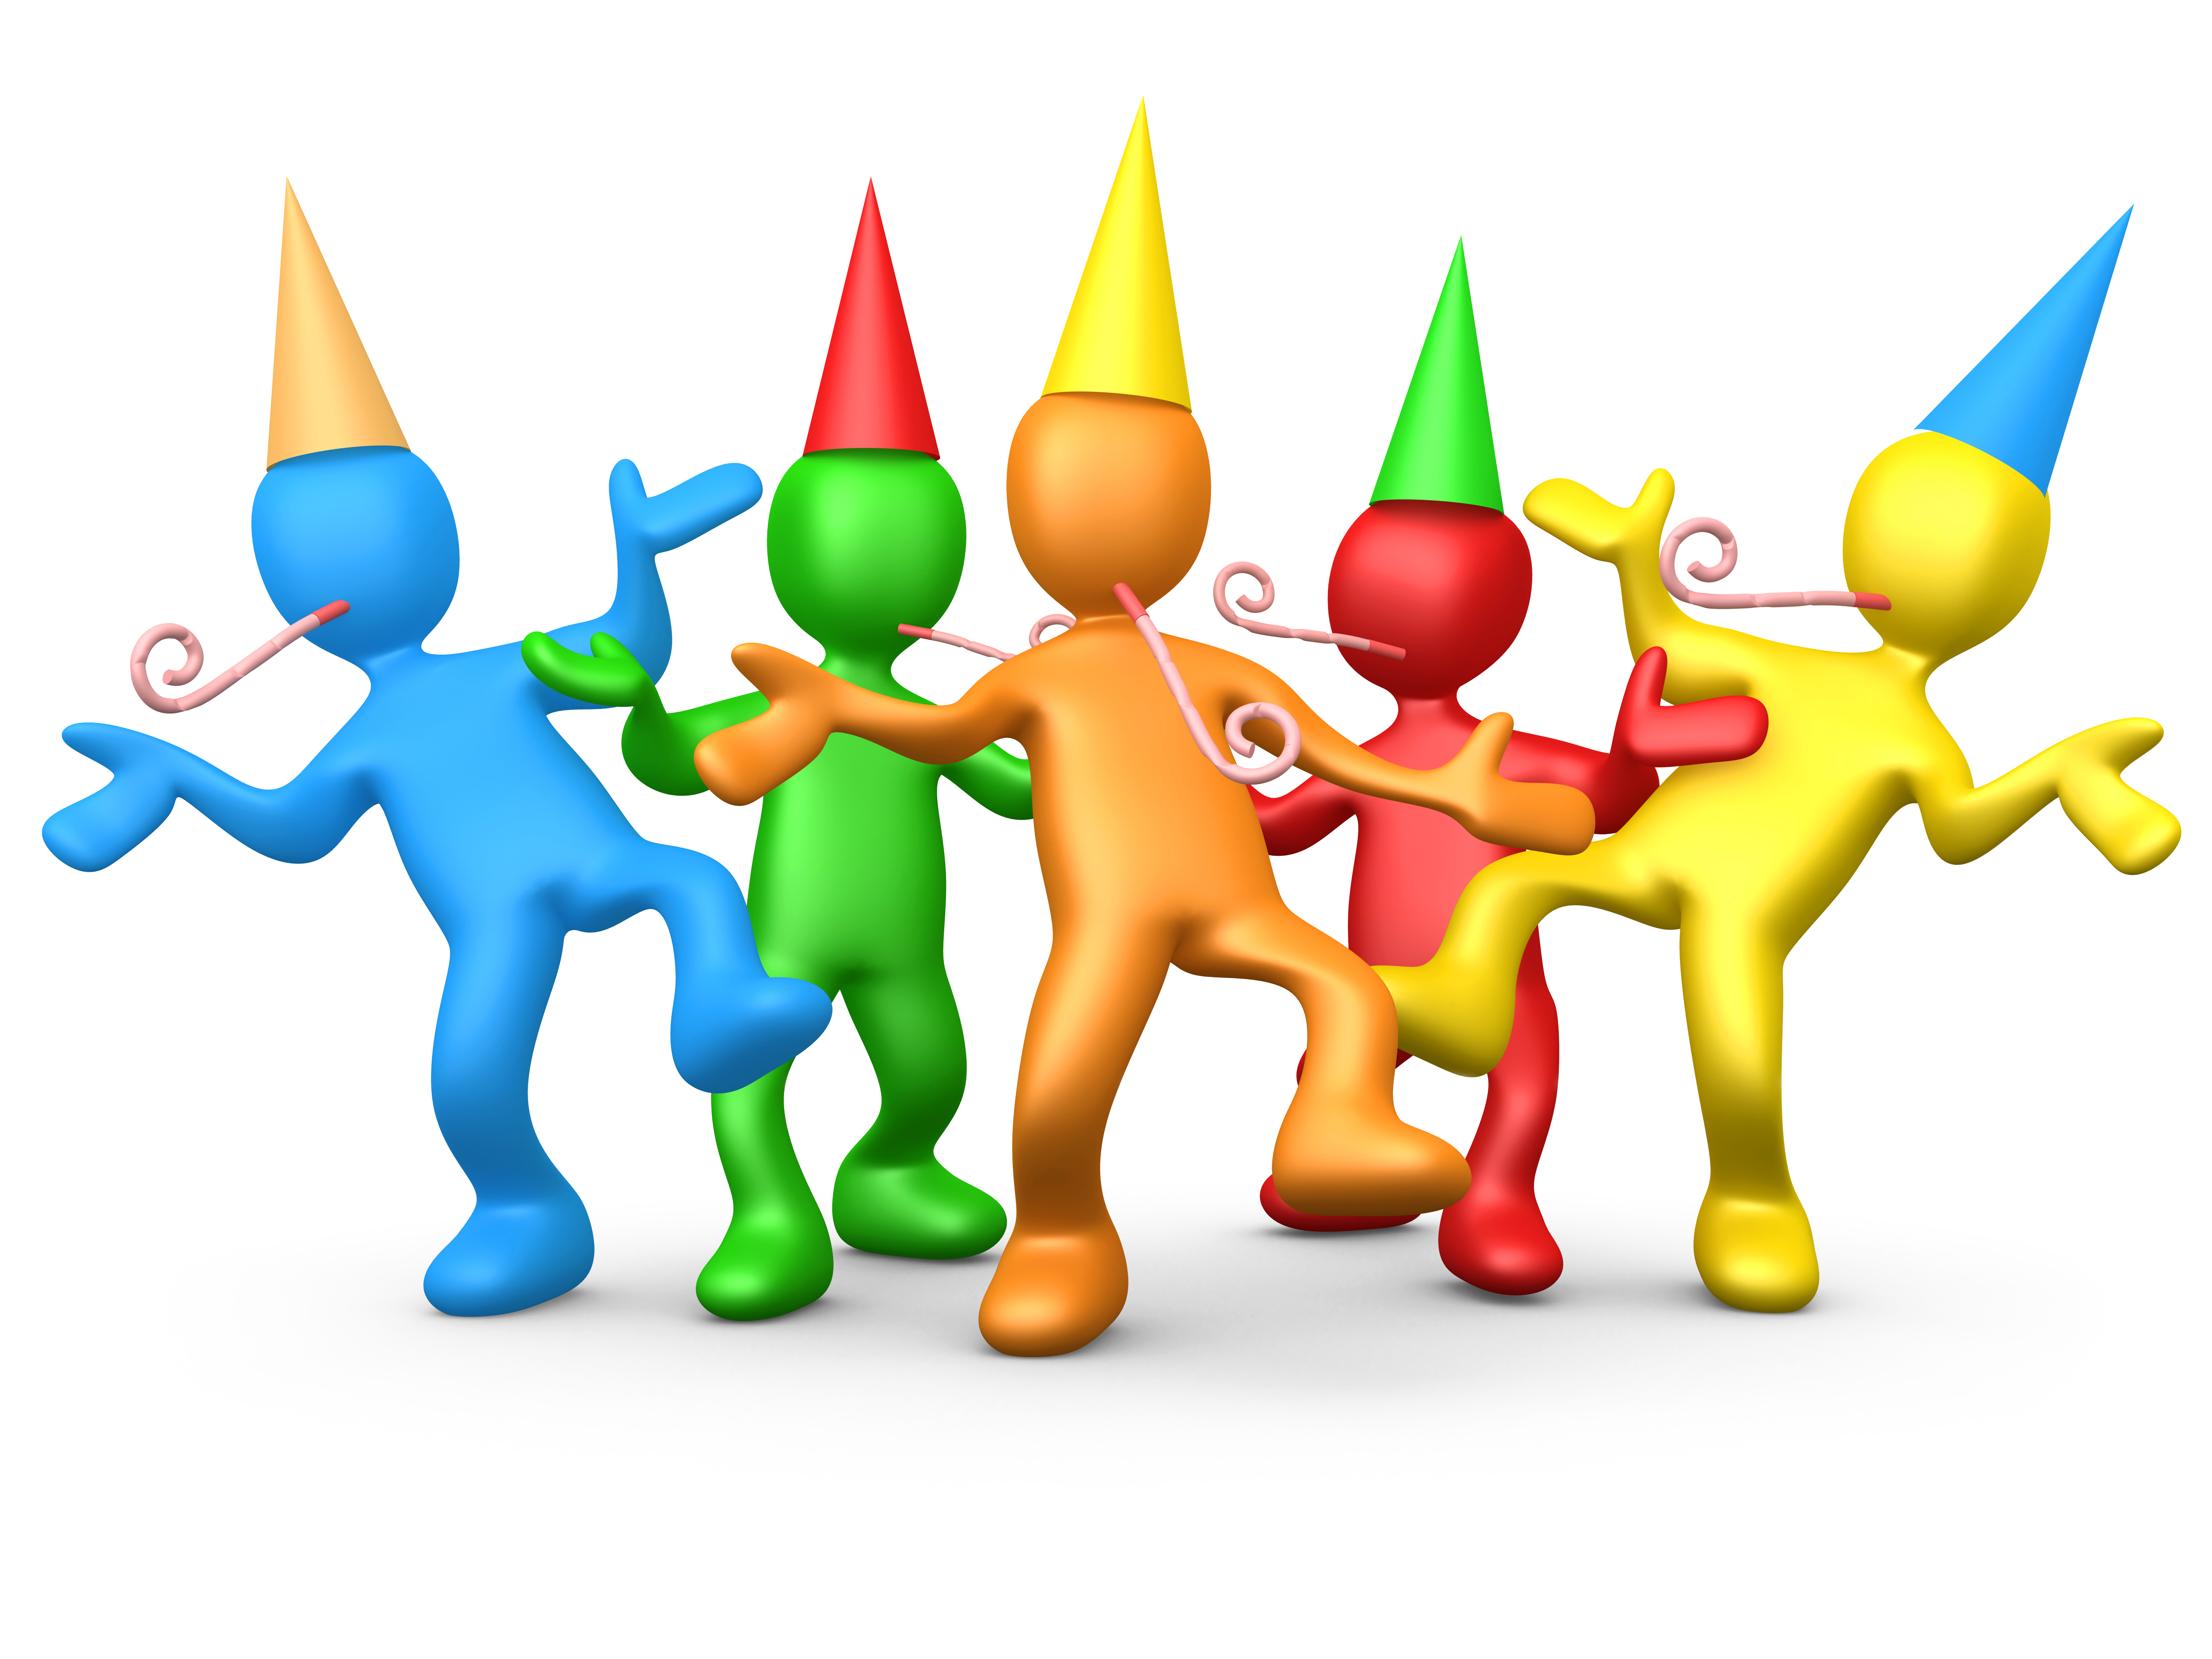 Celebration clipart smiley face Clipart smiley dancing Images Info